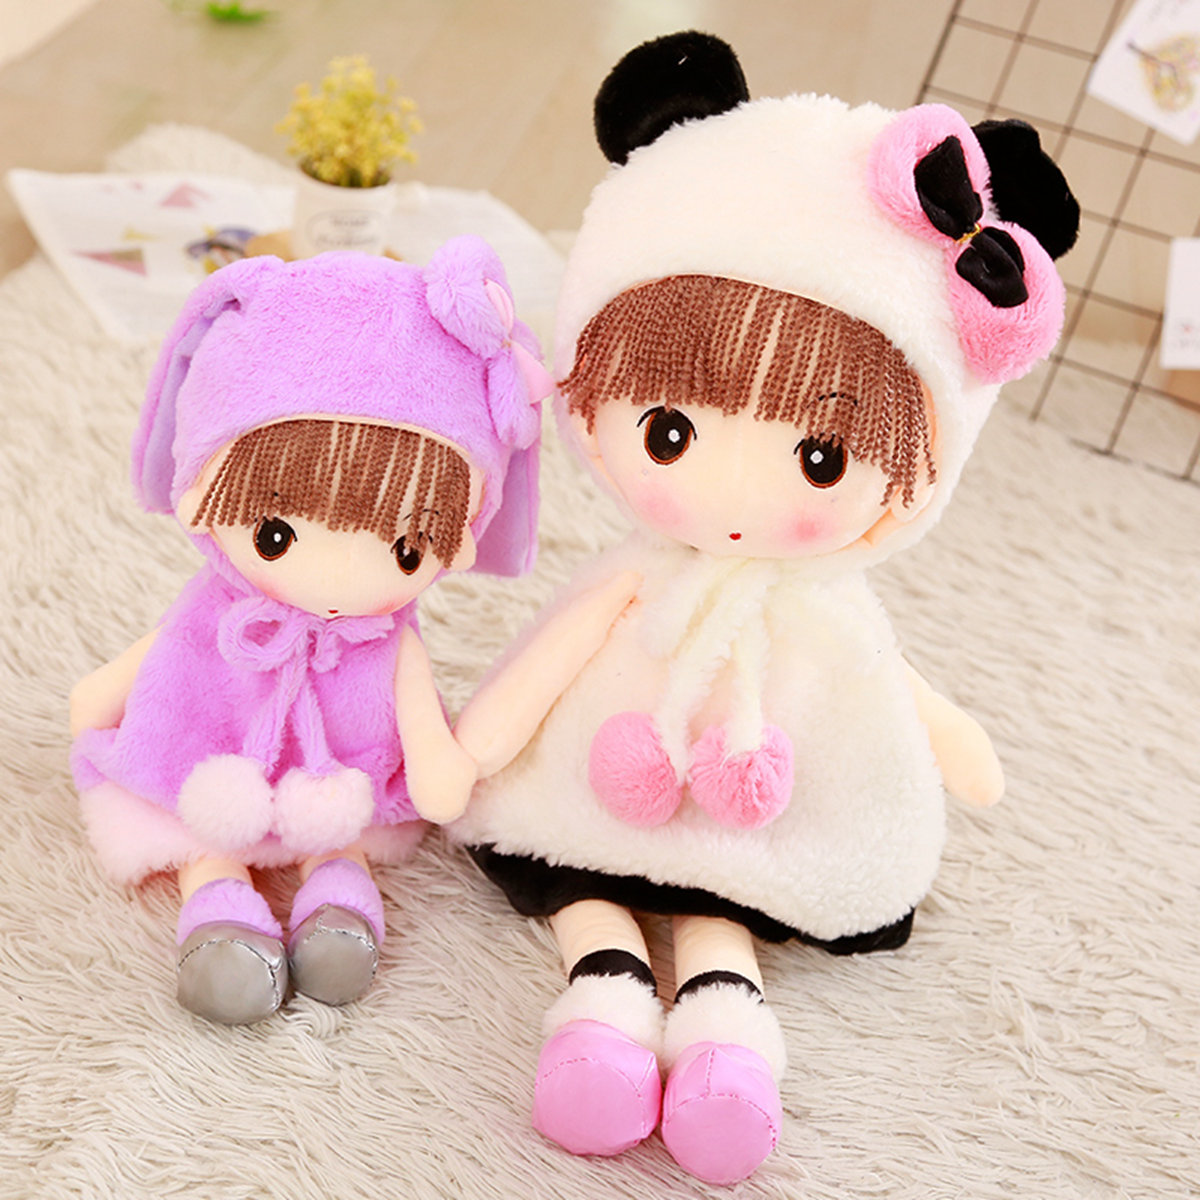 Hat Faye Soft Girl Plush Toy Boy Snow Meng Princess Cloth Doll Child Sleeping DollHat Faye Soft Girl Plush Toy Boy Snow Meng Princess Cloth Doll Child Sleeping Doll